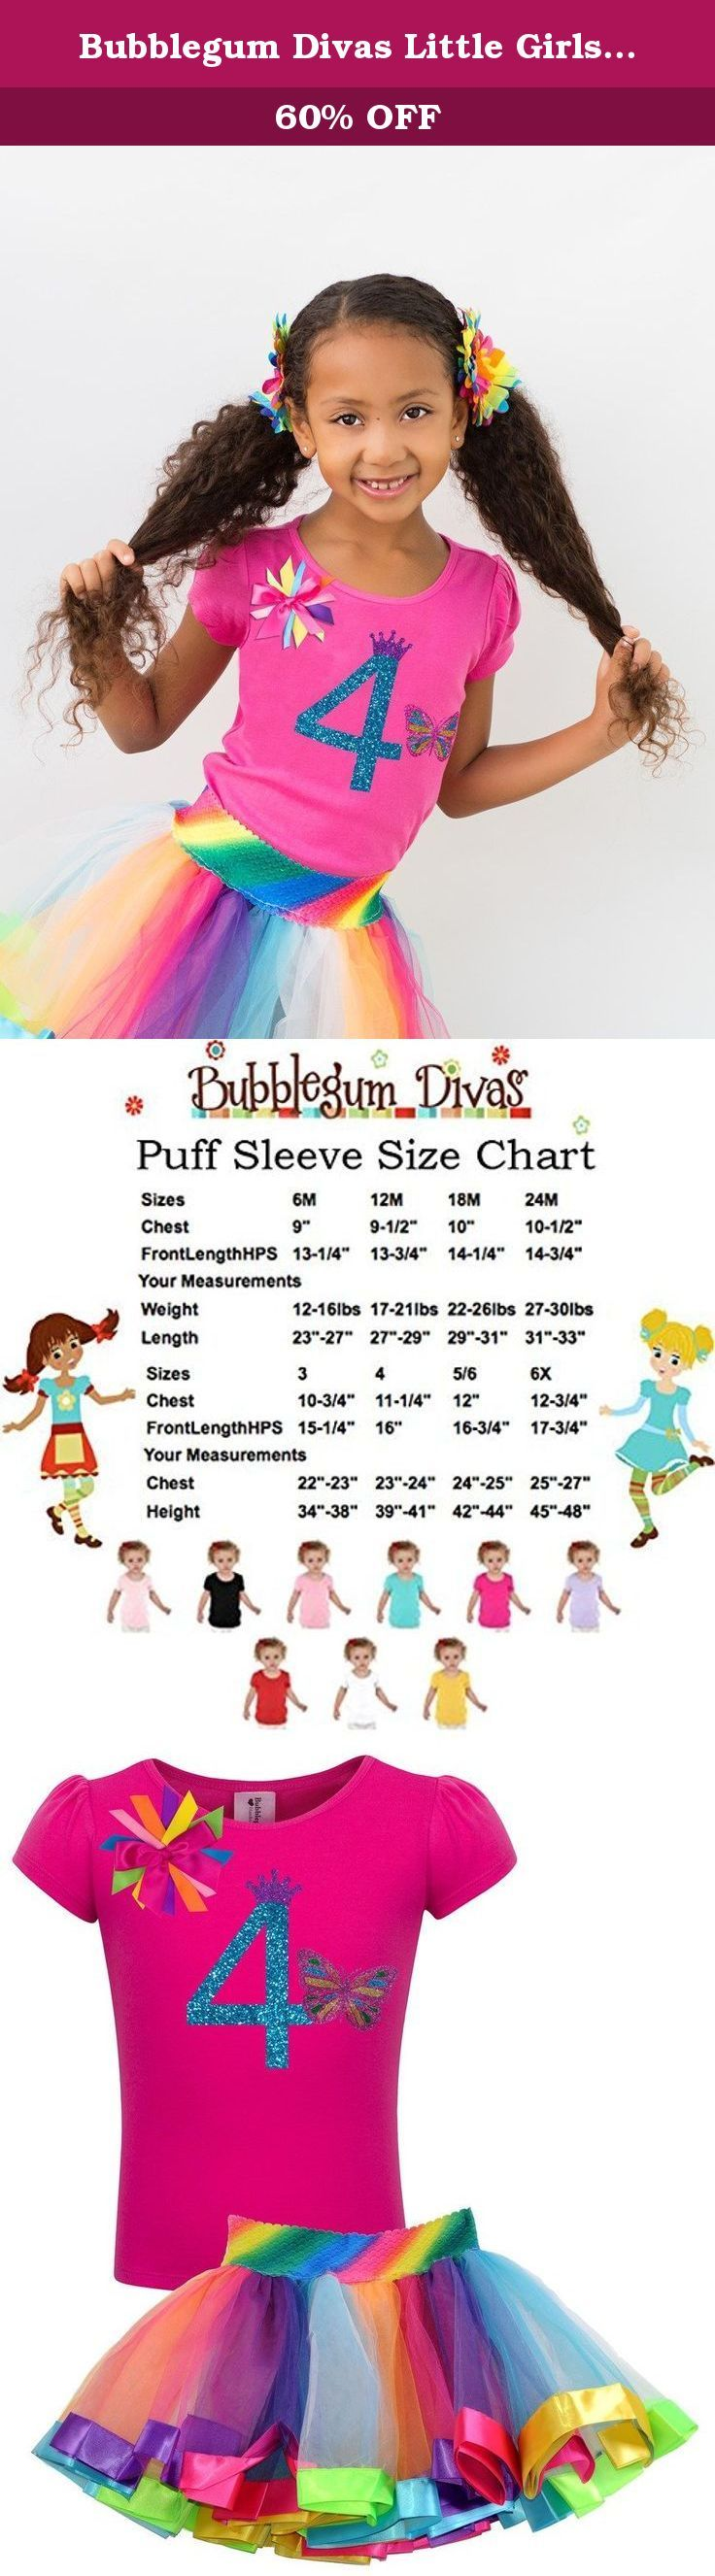 Bubblegum Divas Little Girls 4th Birthday Rainbow Princess Butterfly Tutu Outfit 4. Fly away little butterfly. Princess rainbow pettiskirt 4th birthday party short sleeve shirt for your princess who is turning 4yrs old. She will look absolutely adorable with our rainbow fourth birthday set with a glitter number four. This birthday shirt offers a stretchy fabric blend that is comfy for girls to wear. I've added fun colorful rainbow ribbons, a sparkle number 4 princess crown to top off the...